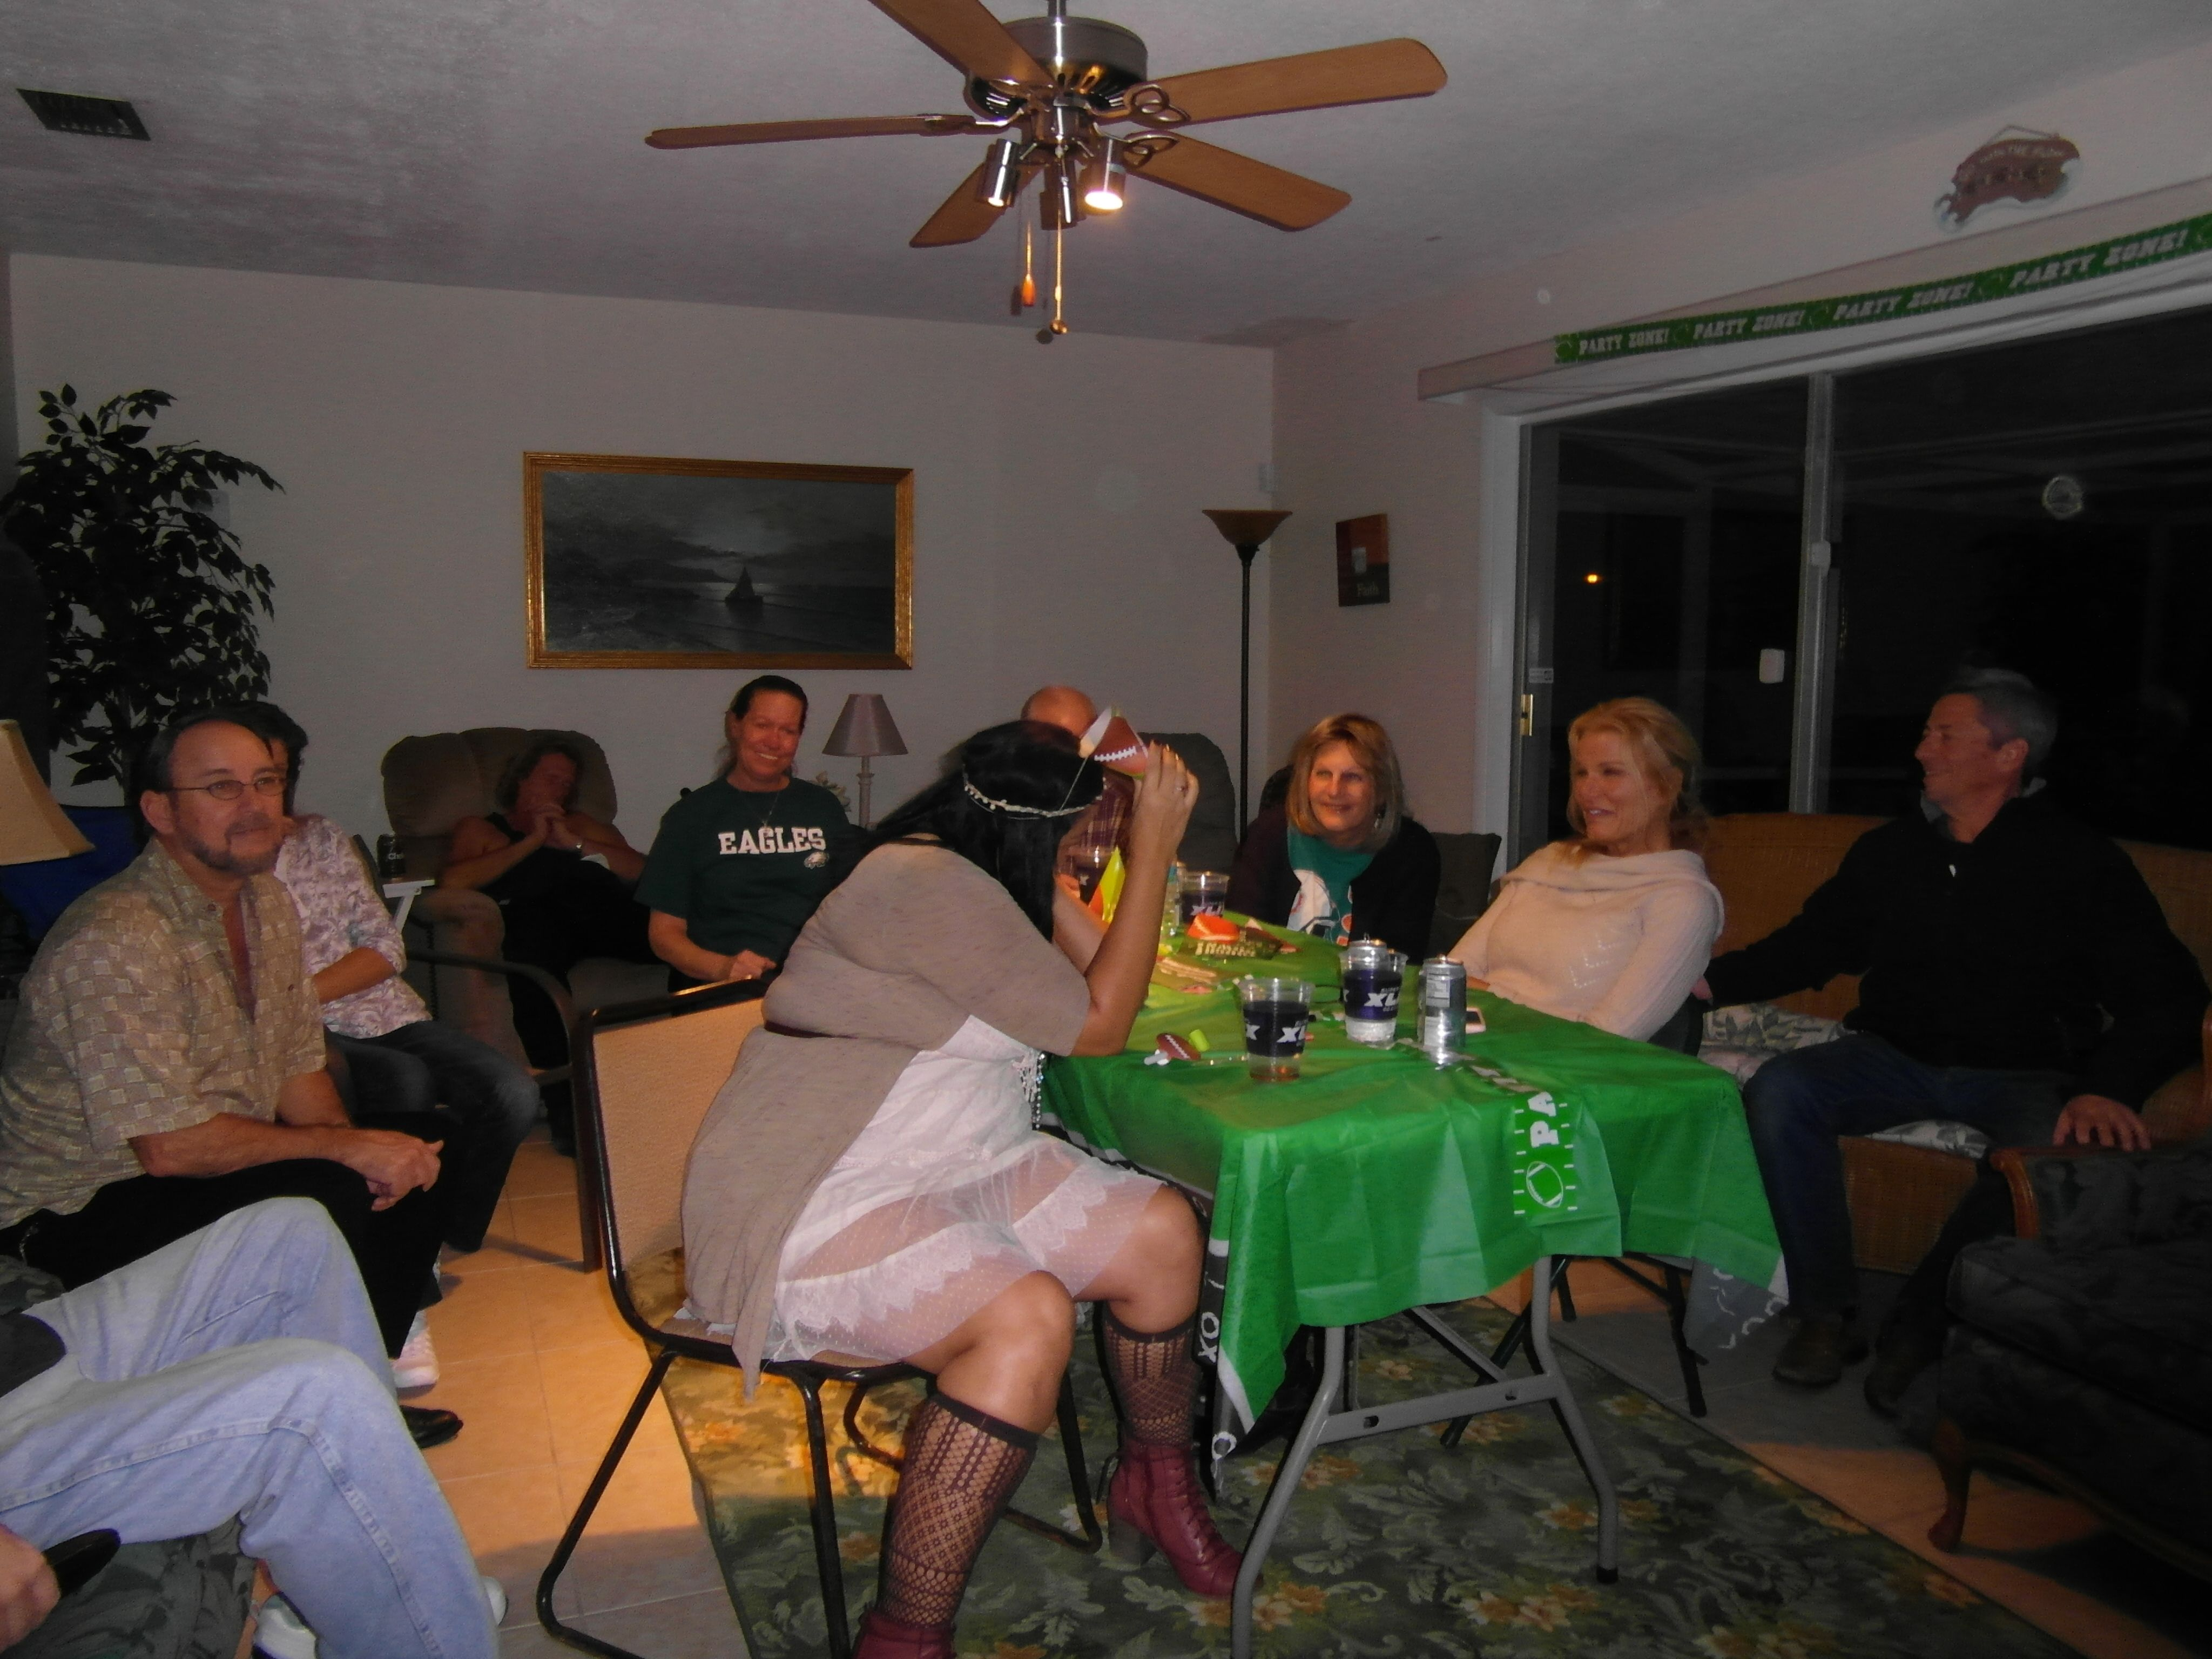 curtis bay christian personals Meetups in curtis bay these are just some of the different kinds of meetup groups you can find near curtis bay sign me up let's  50+ singles travel and social.